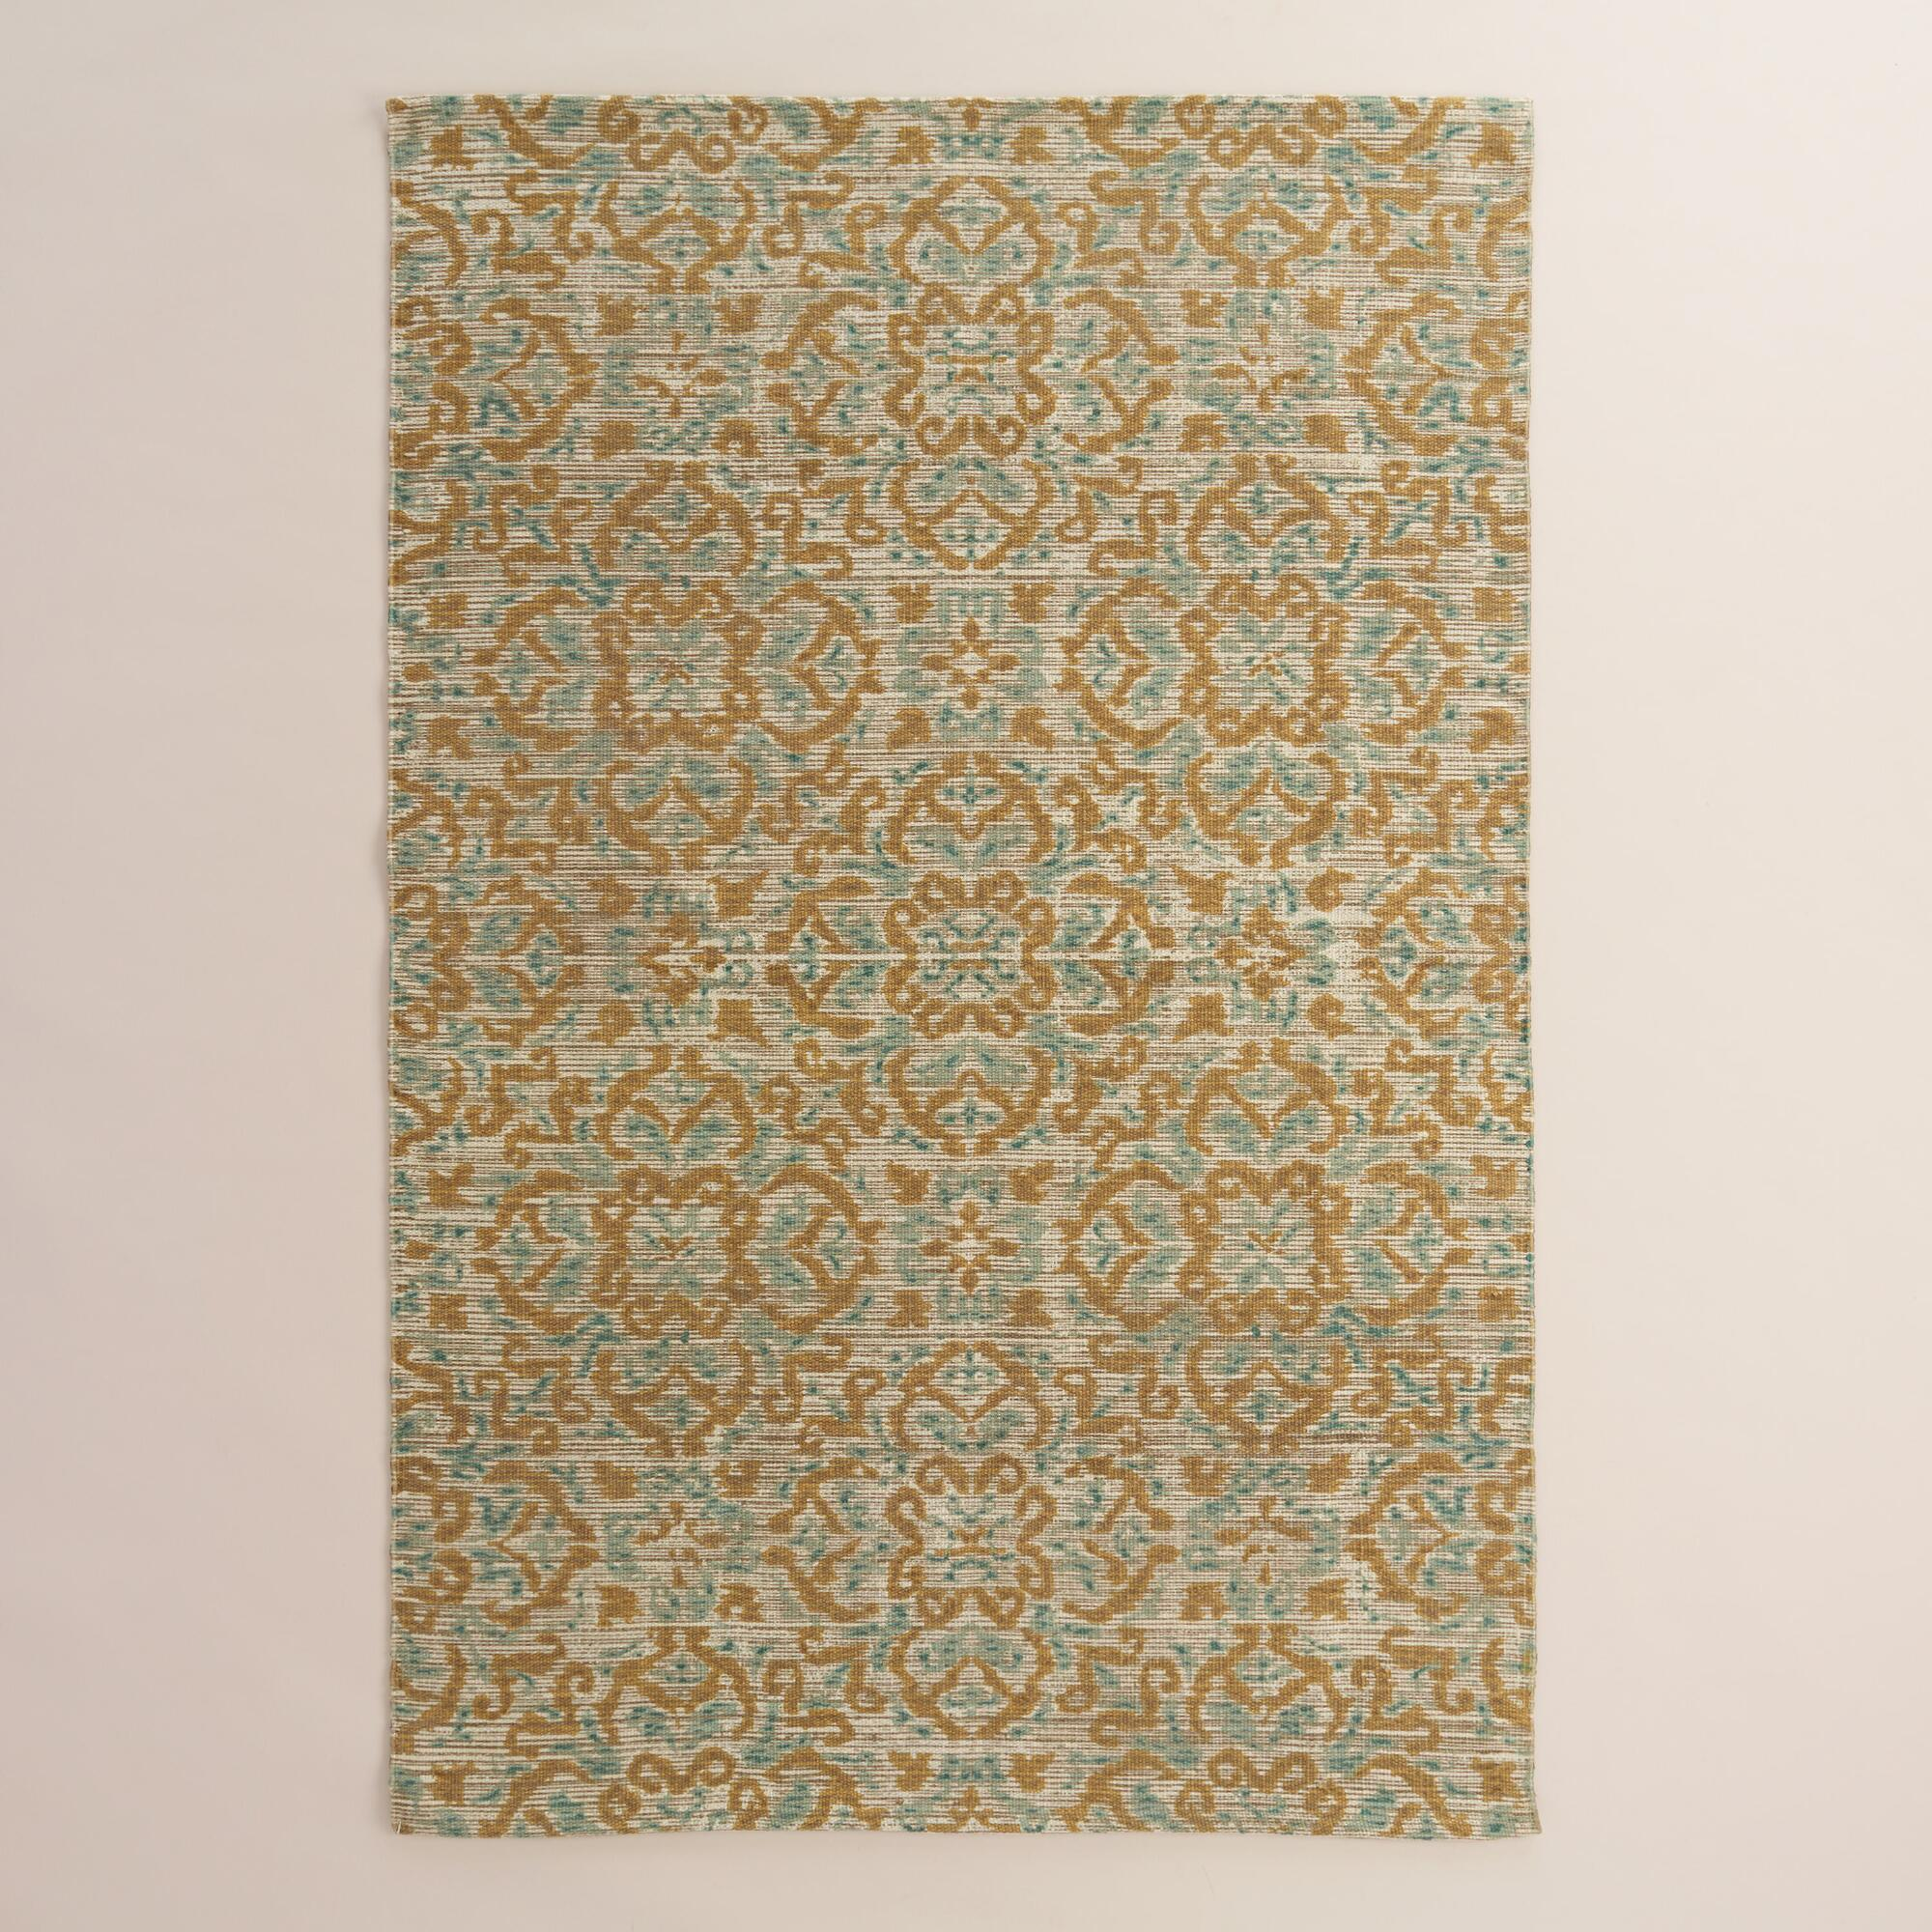 Plus, FREE Shipping available at World Market!Unique, Handmade Rugs· Mix and Match Decor· Global-Inspired FurnitureStyles: Mid-Century, Industrial, Moroccan, Indian, Vintage, Patterns.